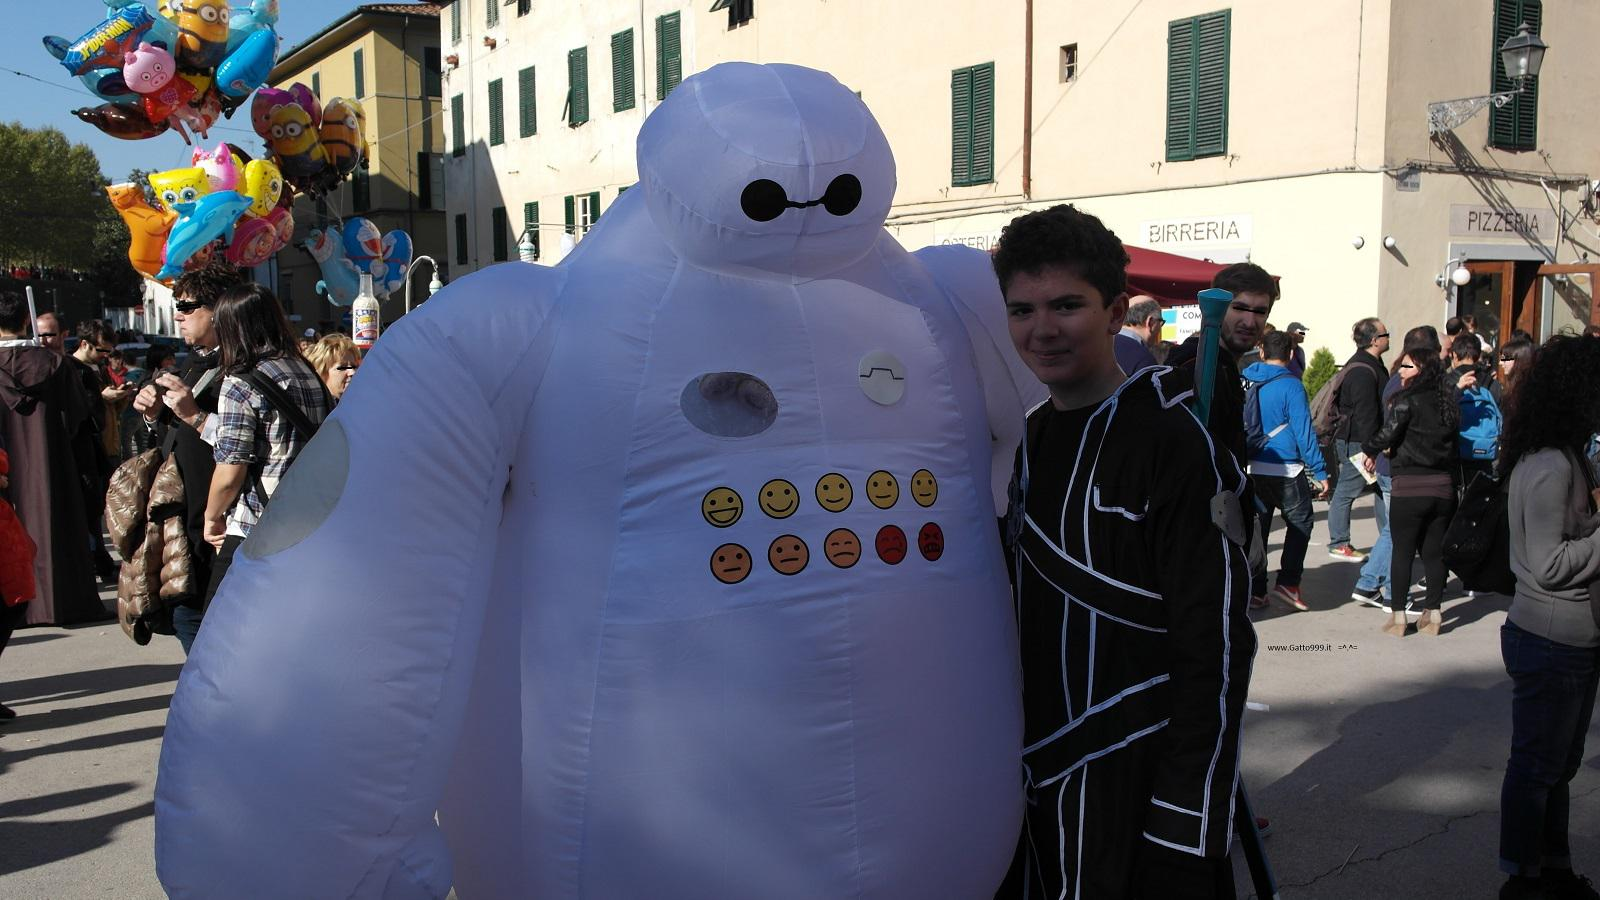 Lucca Comics and Games 2015 - Big Hero 6 cosplay - Big Hero Six Baymax cosplay